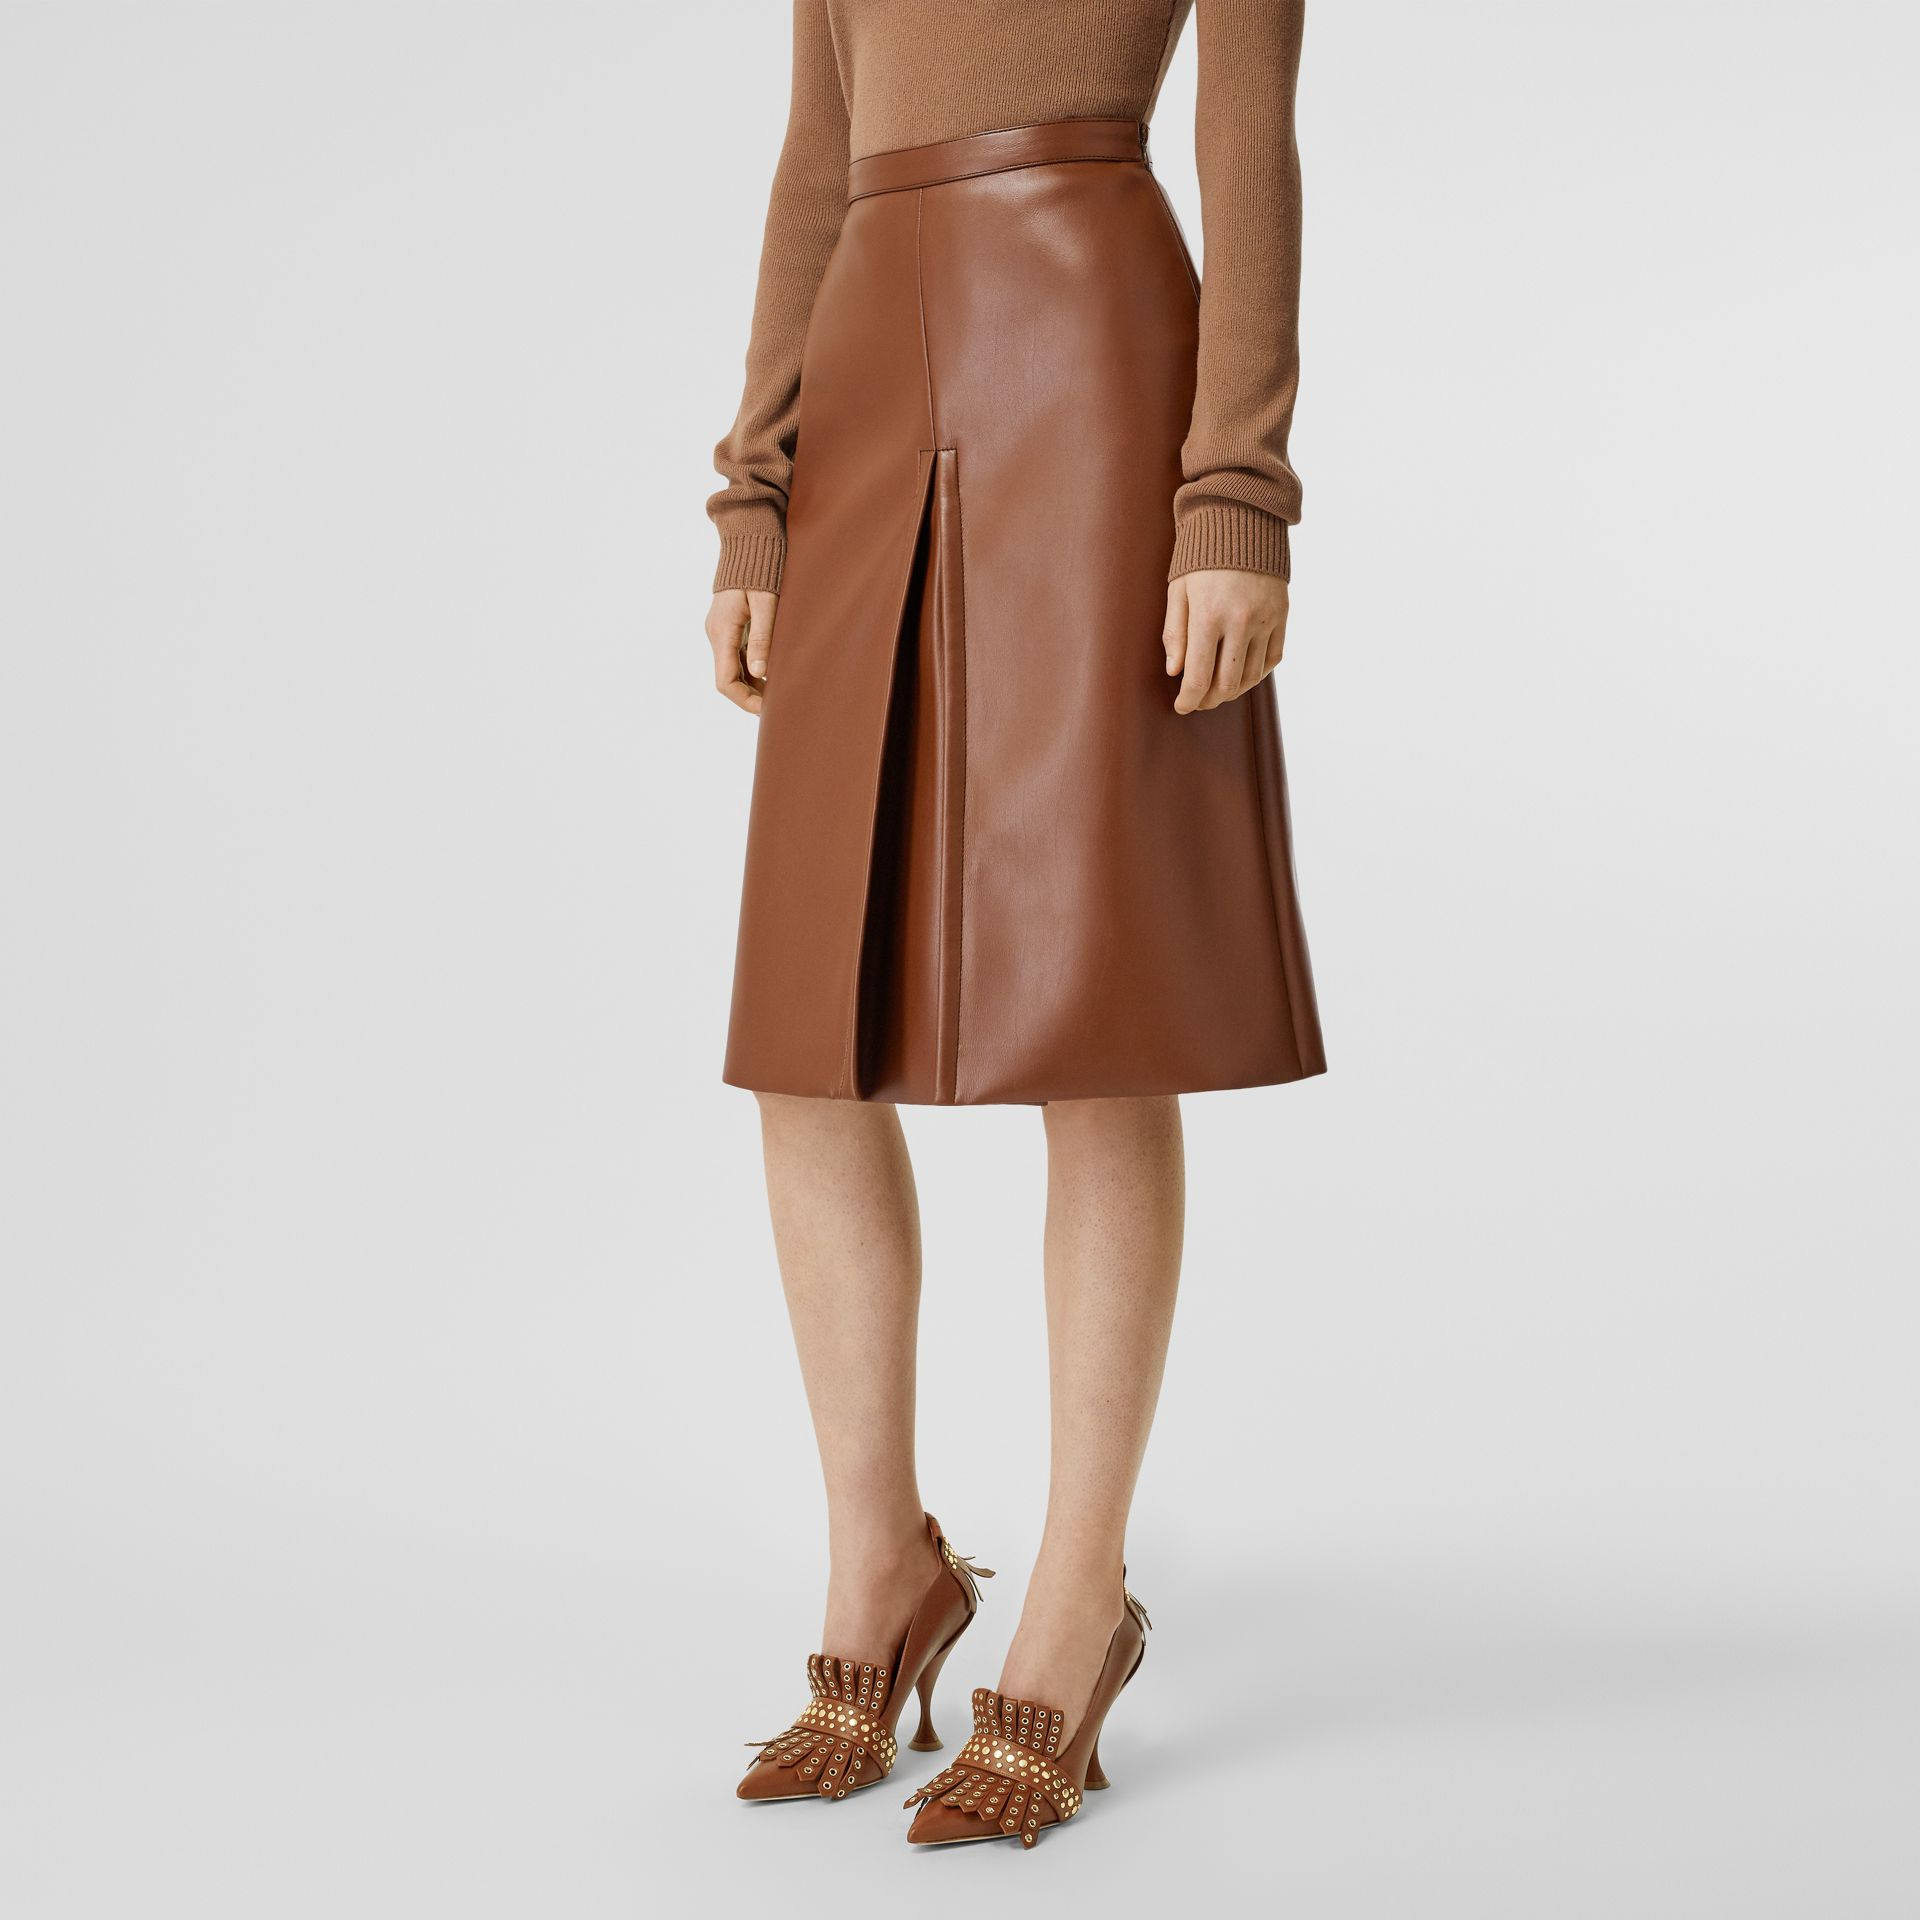 Box Pleat Detail Faux Leather Skirt in Dark Cheshnut Brown - Women | Burberry Hong Kong S.A.R - gallery image 4